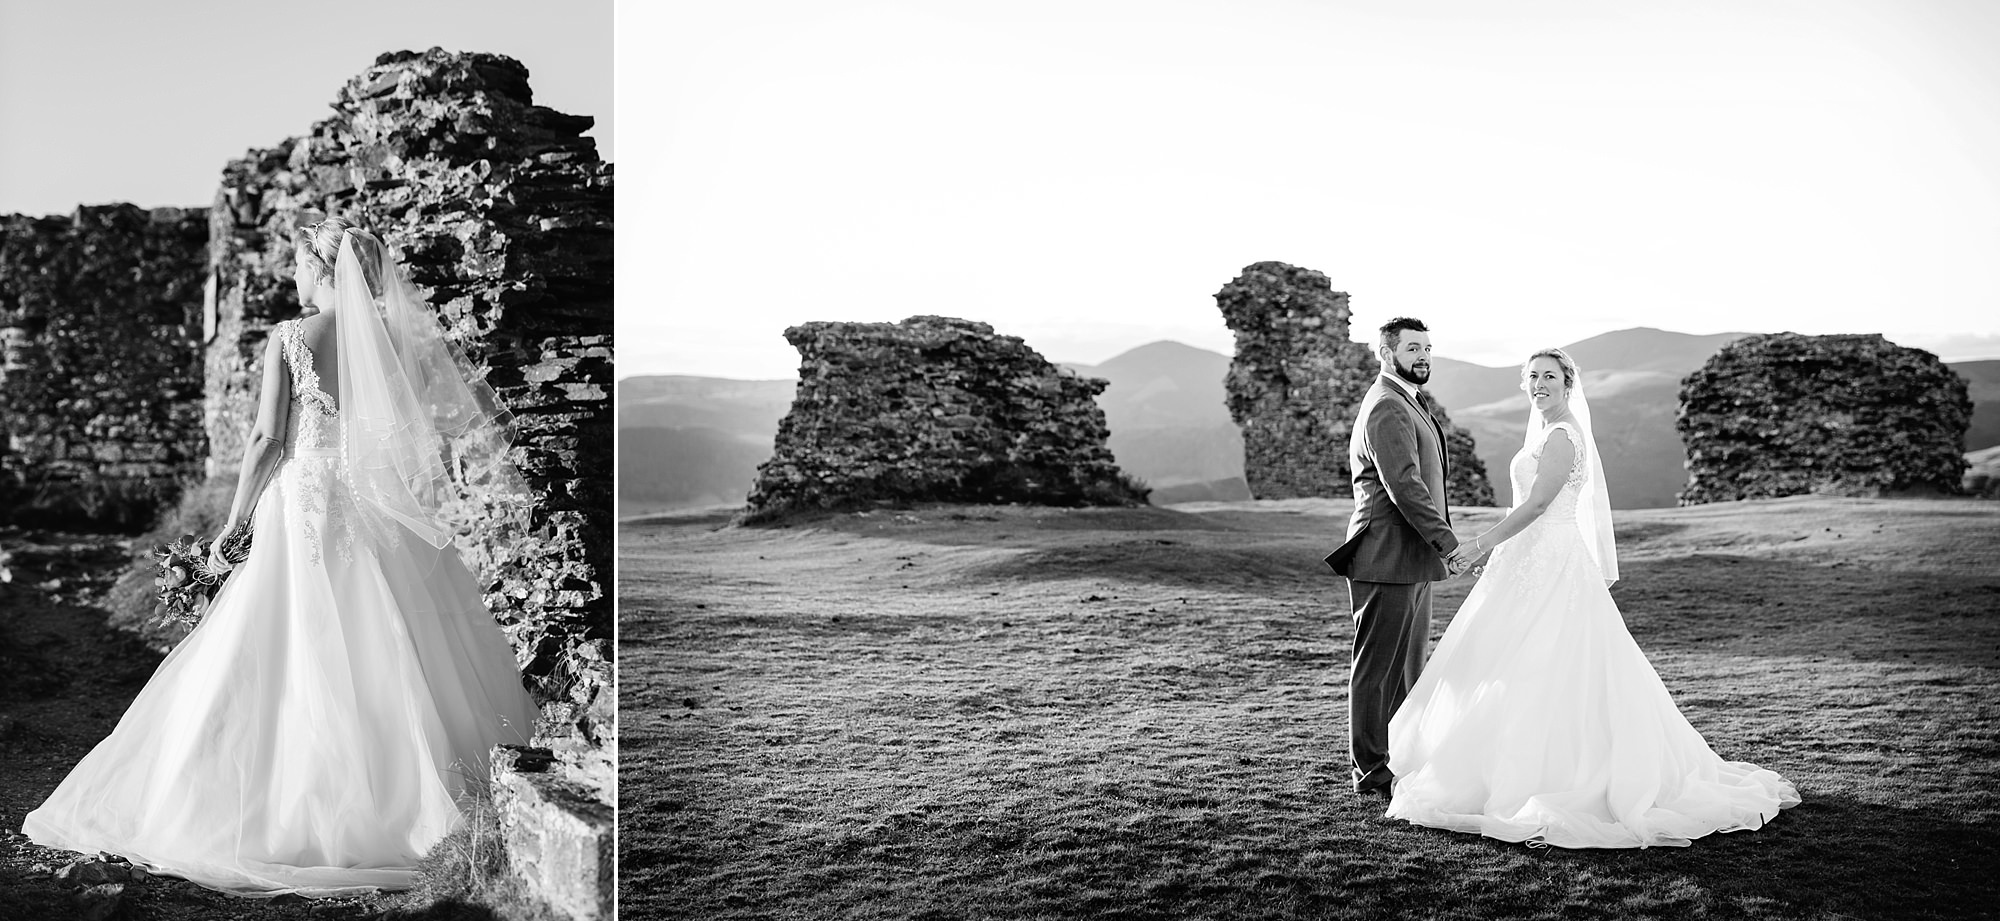 Castell dinas bran wedding photography a bride and groom stood at castle ruins at sunset